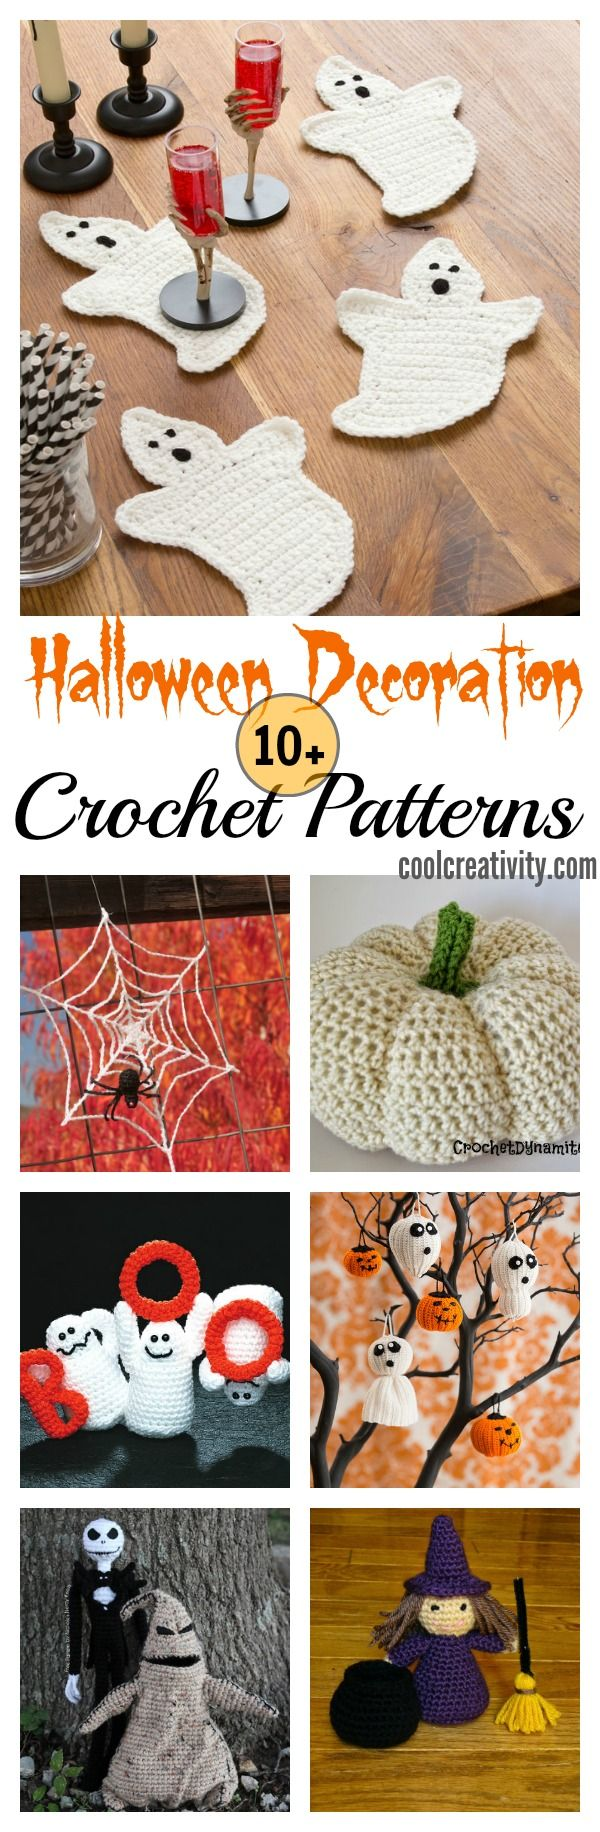 Here are some Halloween decors with free crochet patterns. | DIY Halloween Decor Ideas | Halloween Crochet Projects | Yarn Lovers